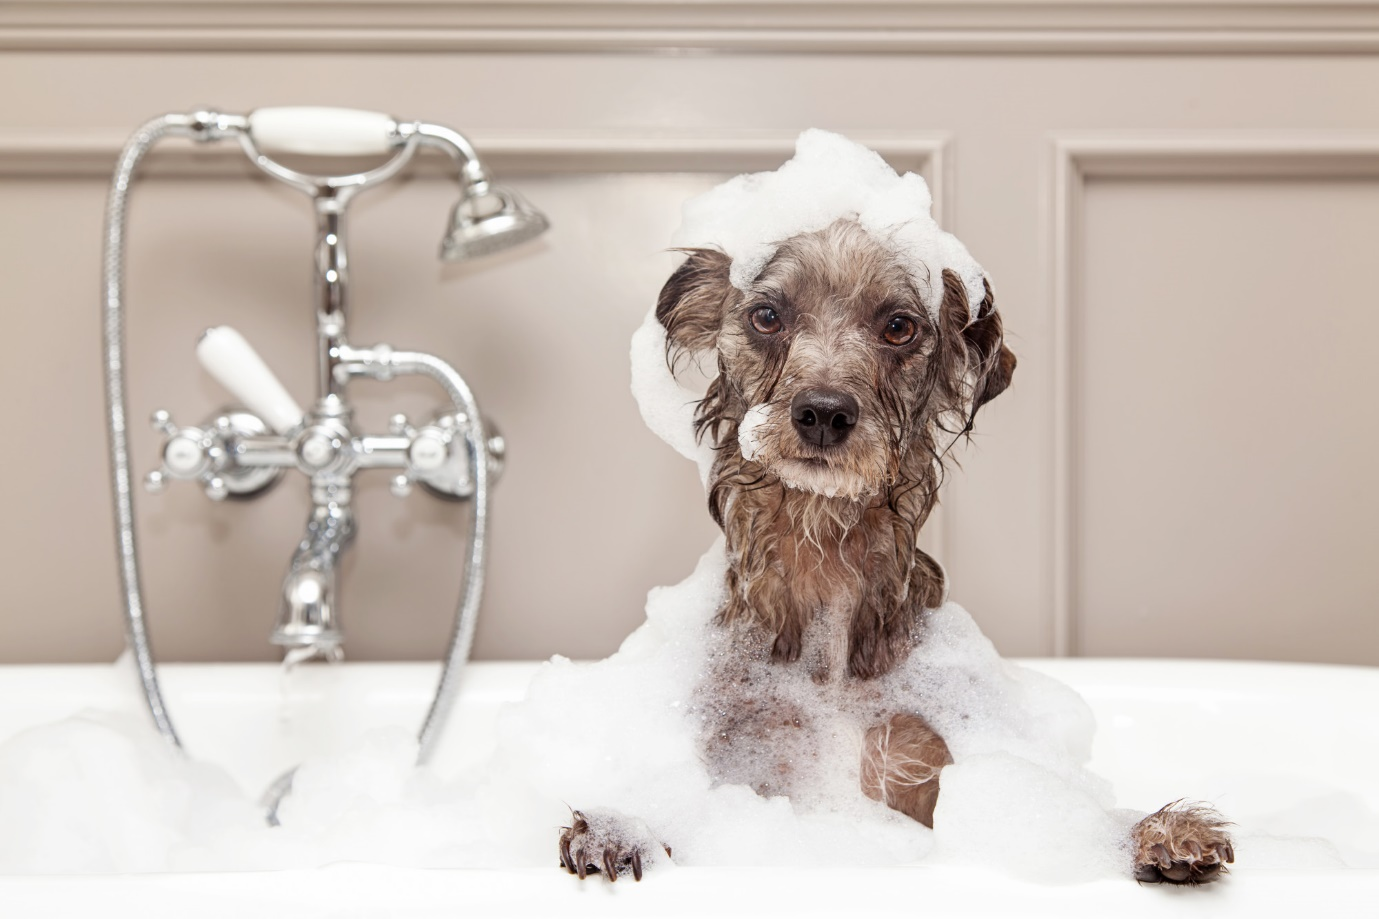 Keep Your Dog Smelling Fresh: 3 Tips on How to Bathe Your Dog